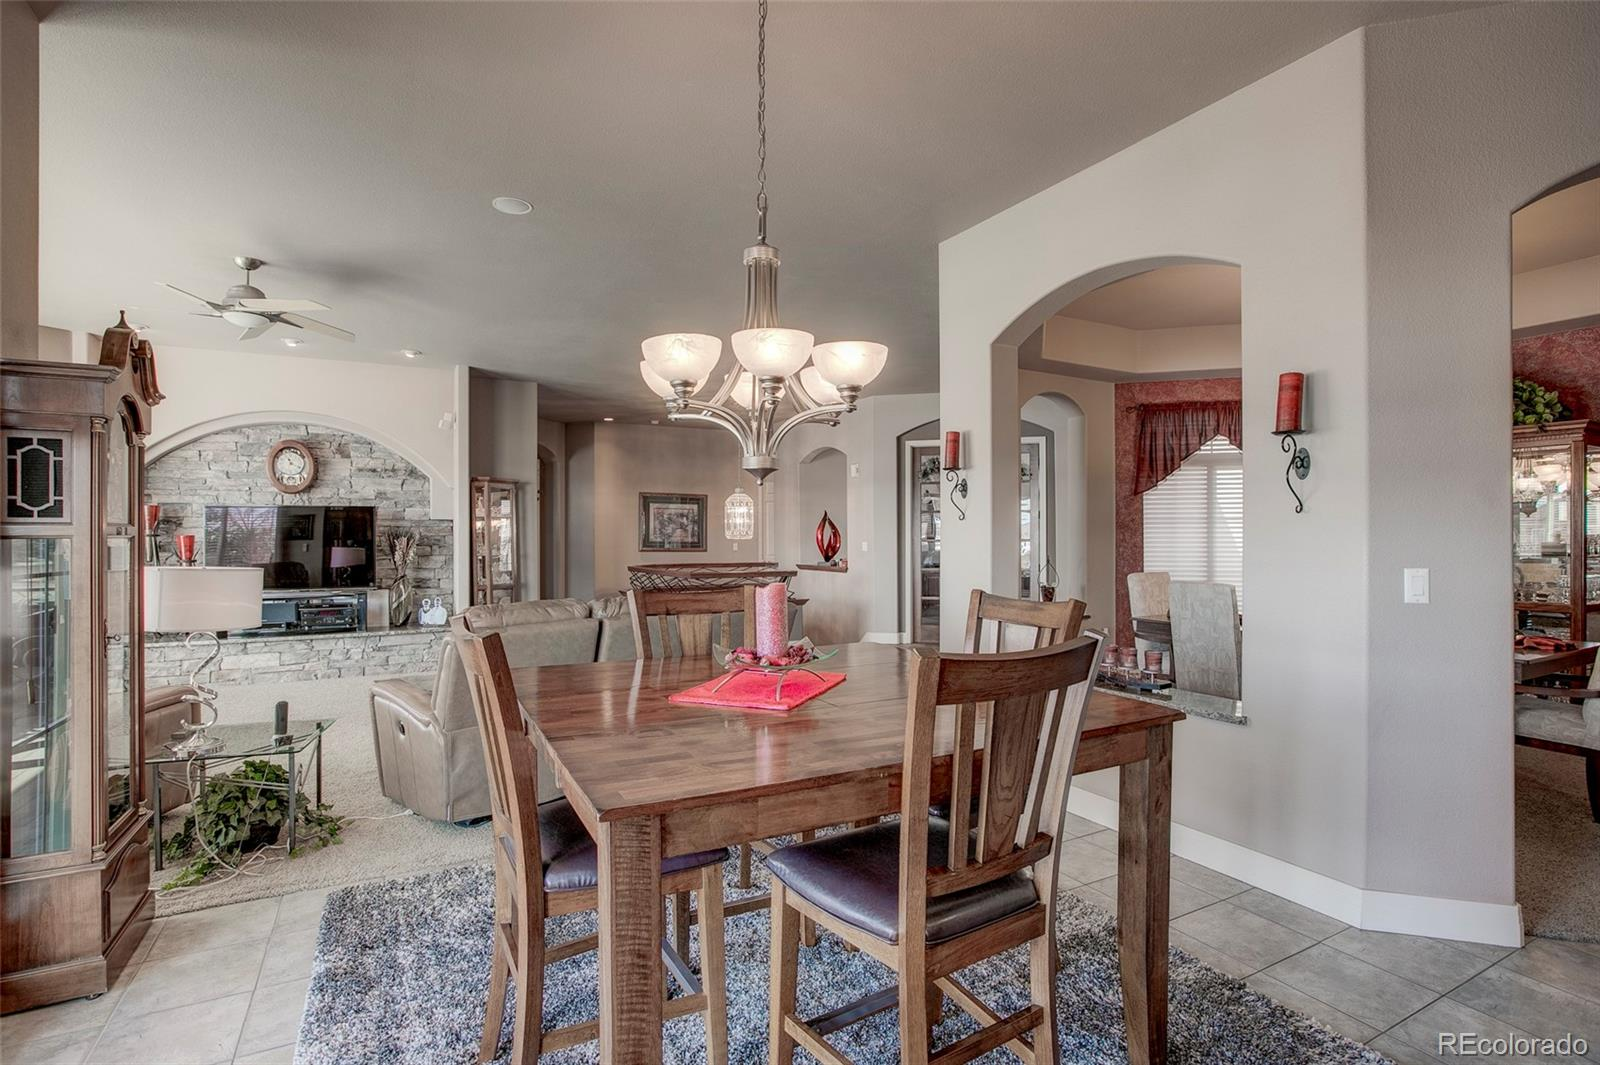 MLS# 7126152 - 14 - 5816 W Conservation Drive, Frederick, CO 80504